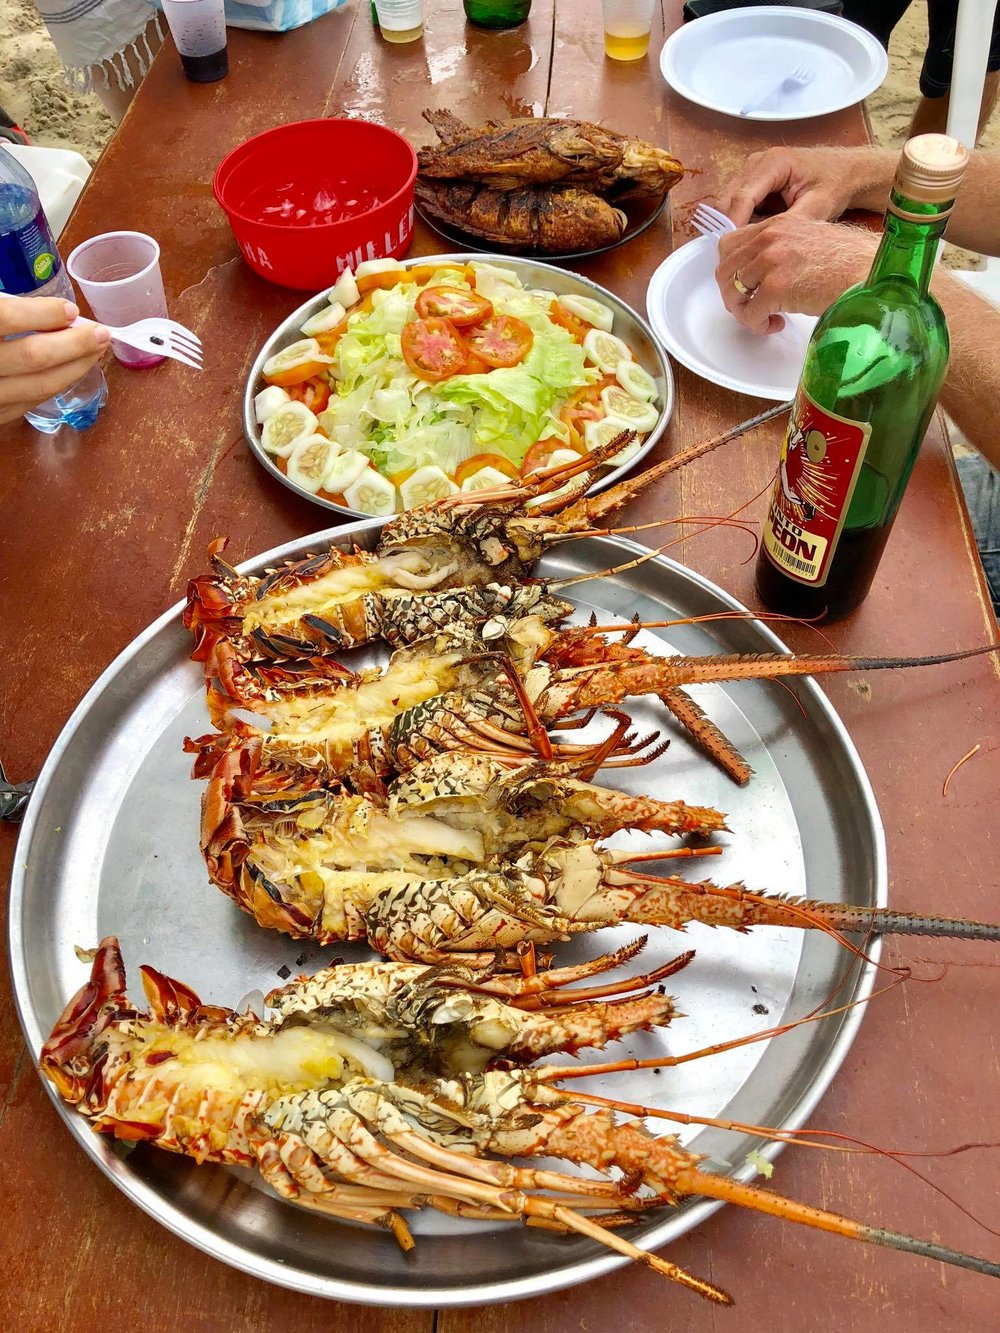 Liveaboard Life Day 255: Roadtrip and Lobster Day in Cambiaso Beach ❤️